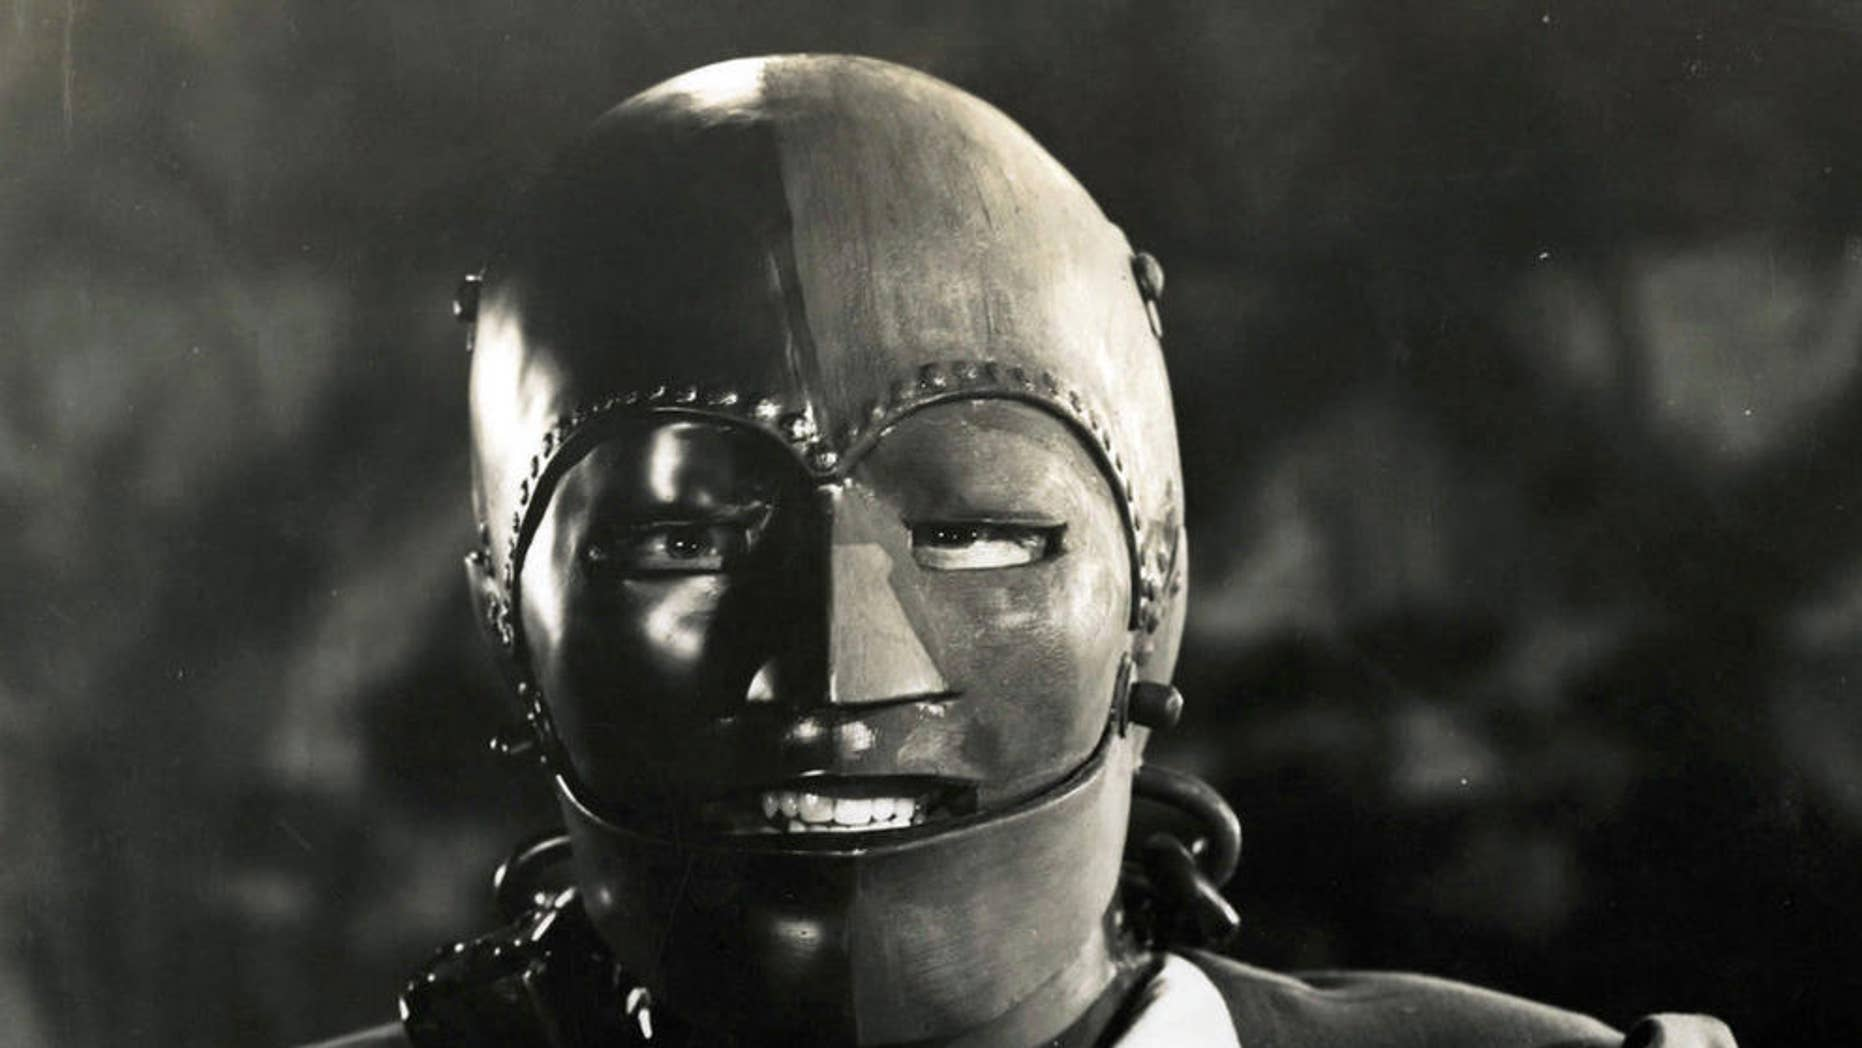 """A still from the 1939 film about the historical mystery, """"The Man in the Iron Mask."""""""